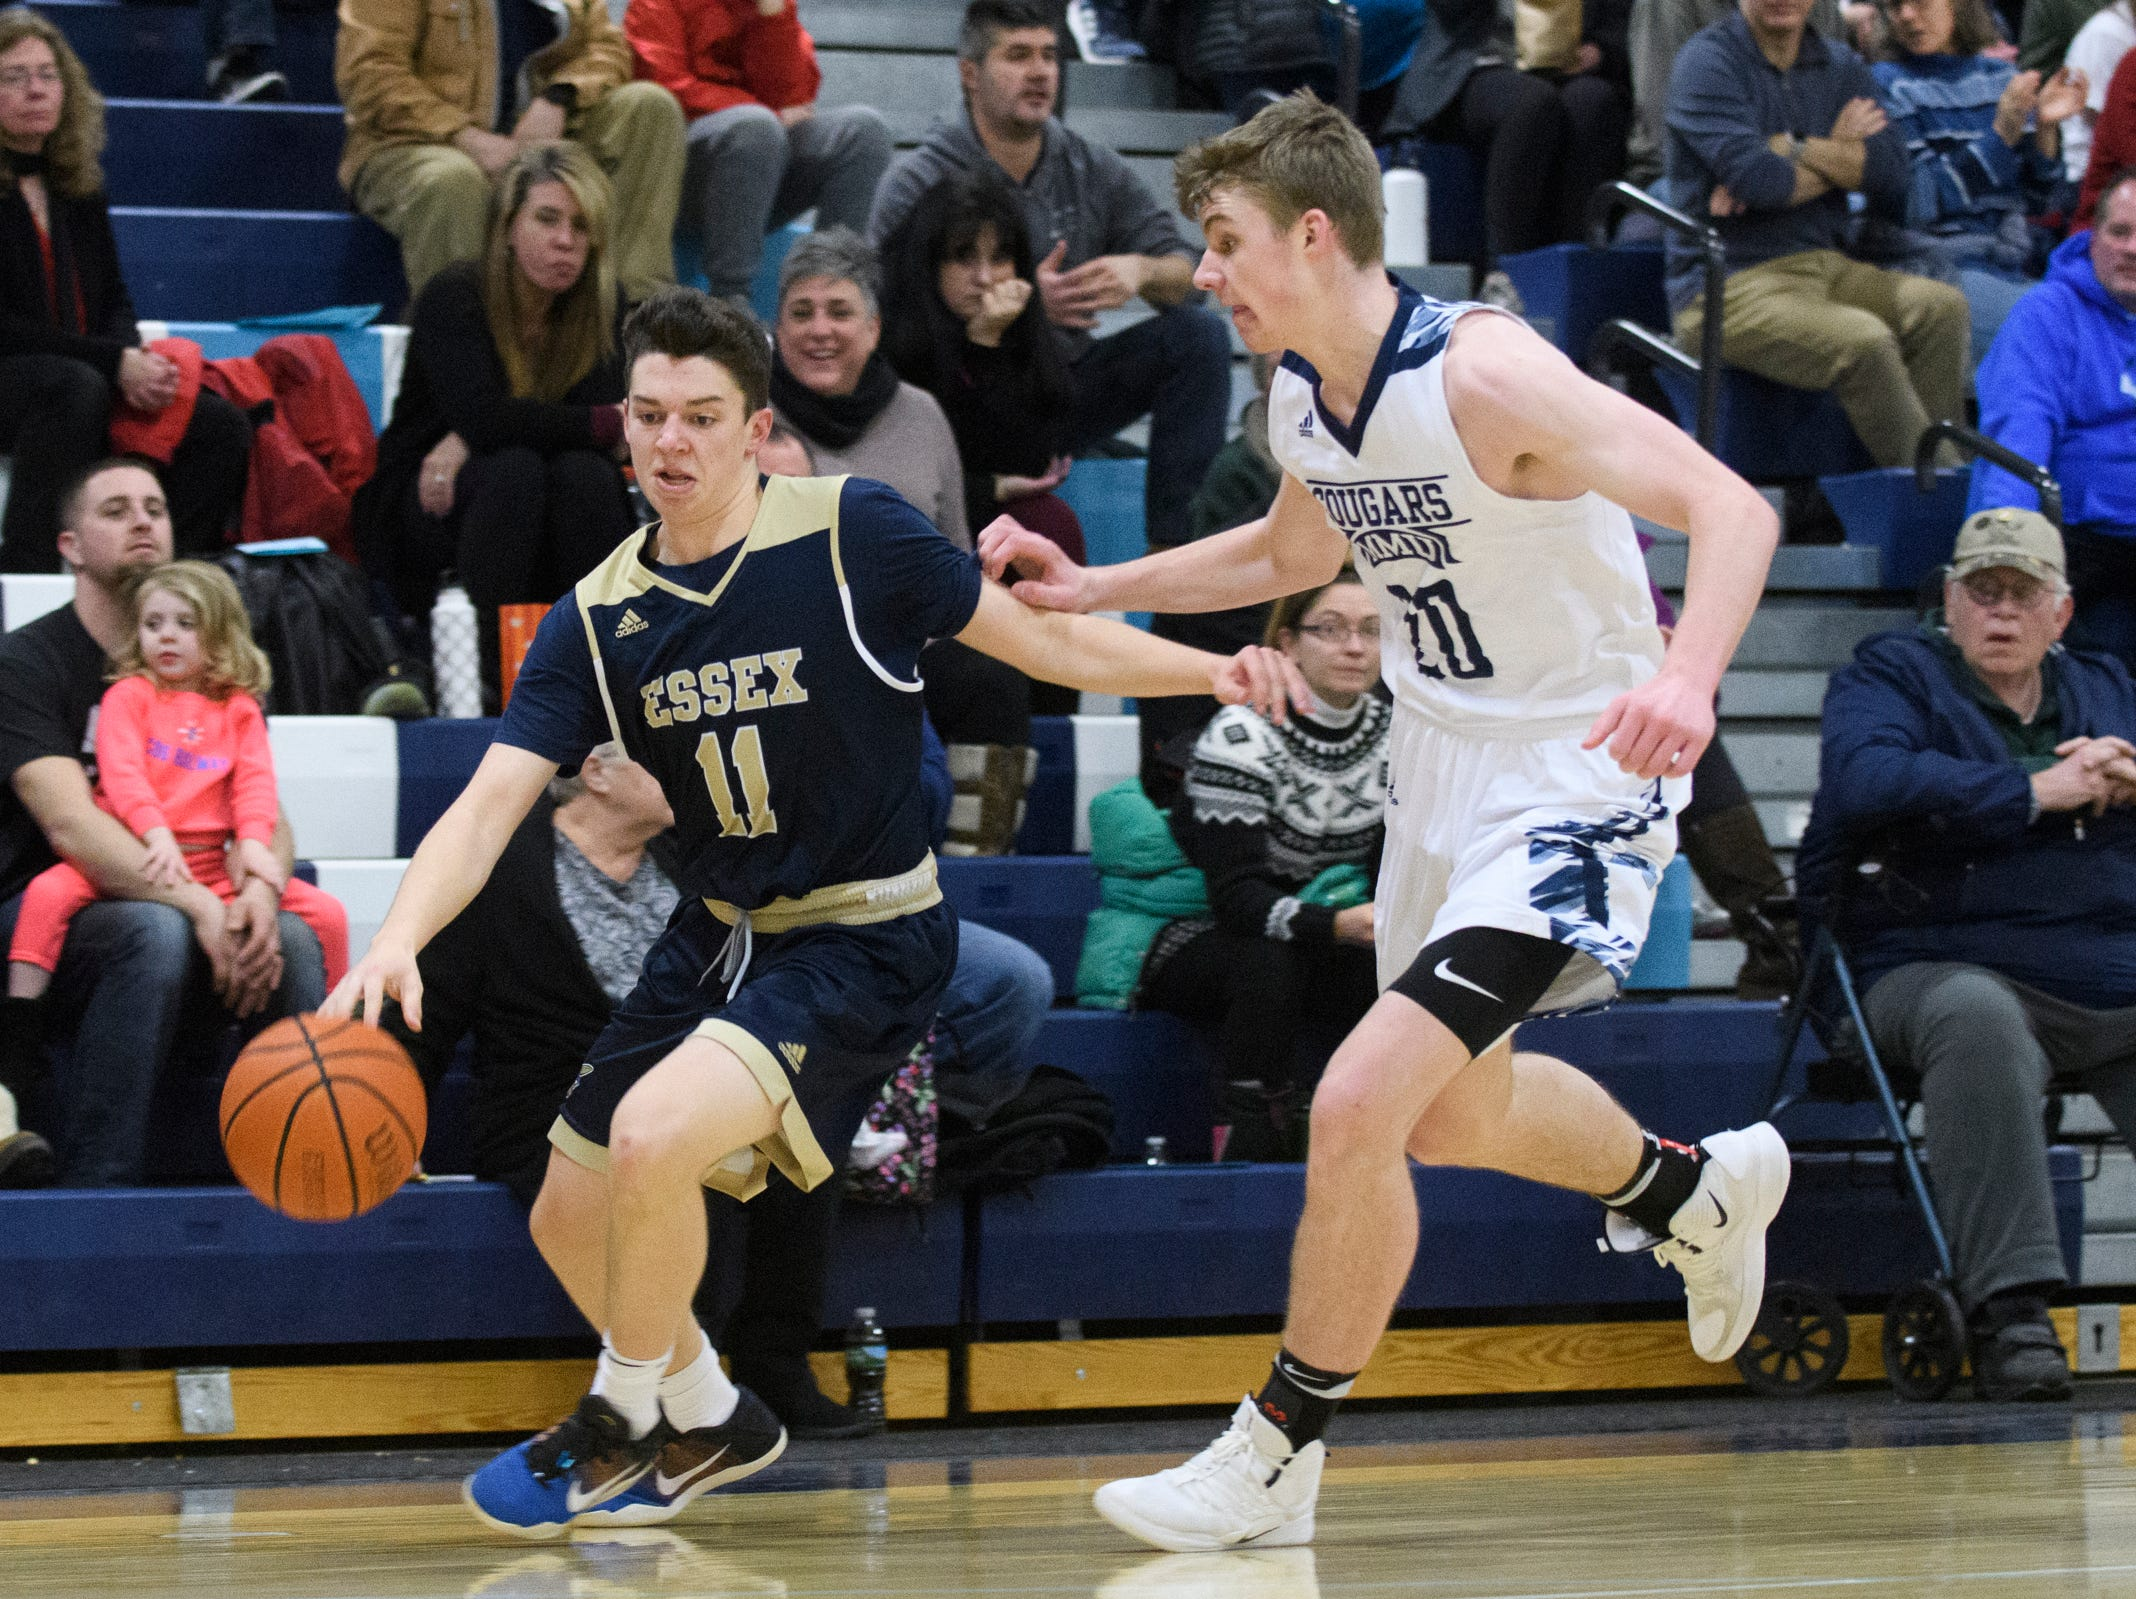 Essex's Parker Whitney (11) dribbles the ball past MMU's Connor Philbrick (20) during the boys basketball game between the Essex Hornets and the Mount Mansfield Cougars at MMU High School on Wednesday night February 13, 2019 in Jericho, Vermont.